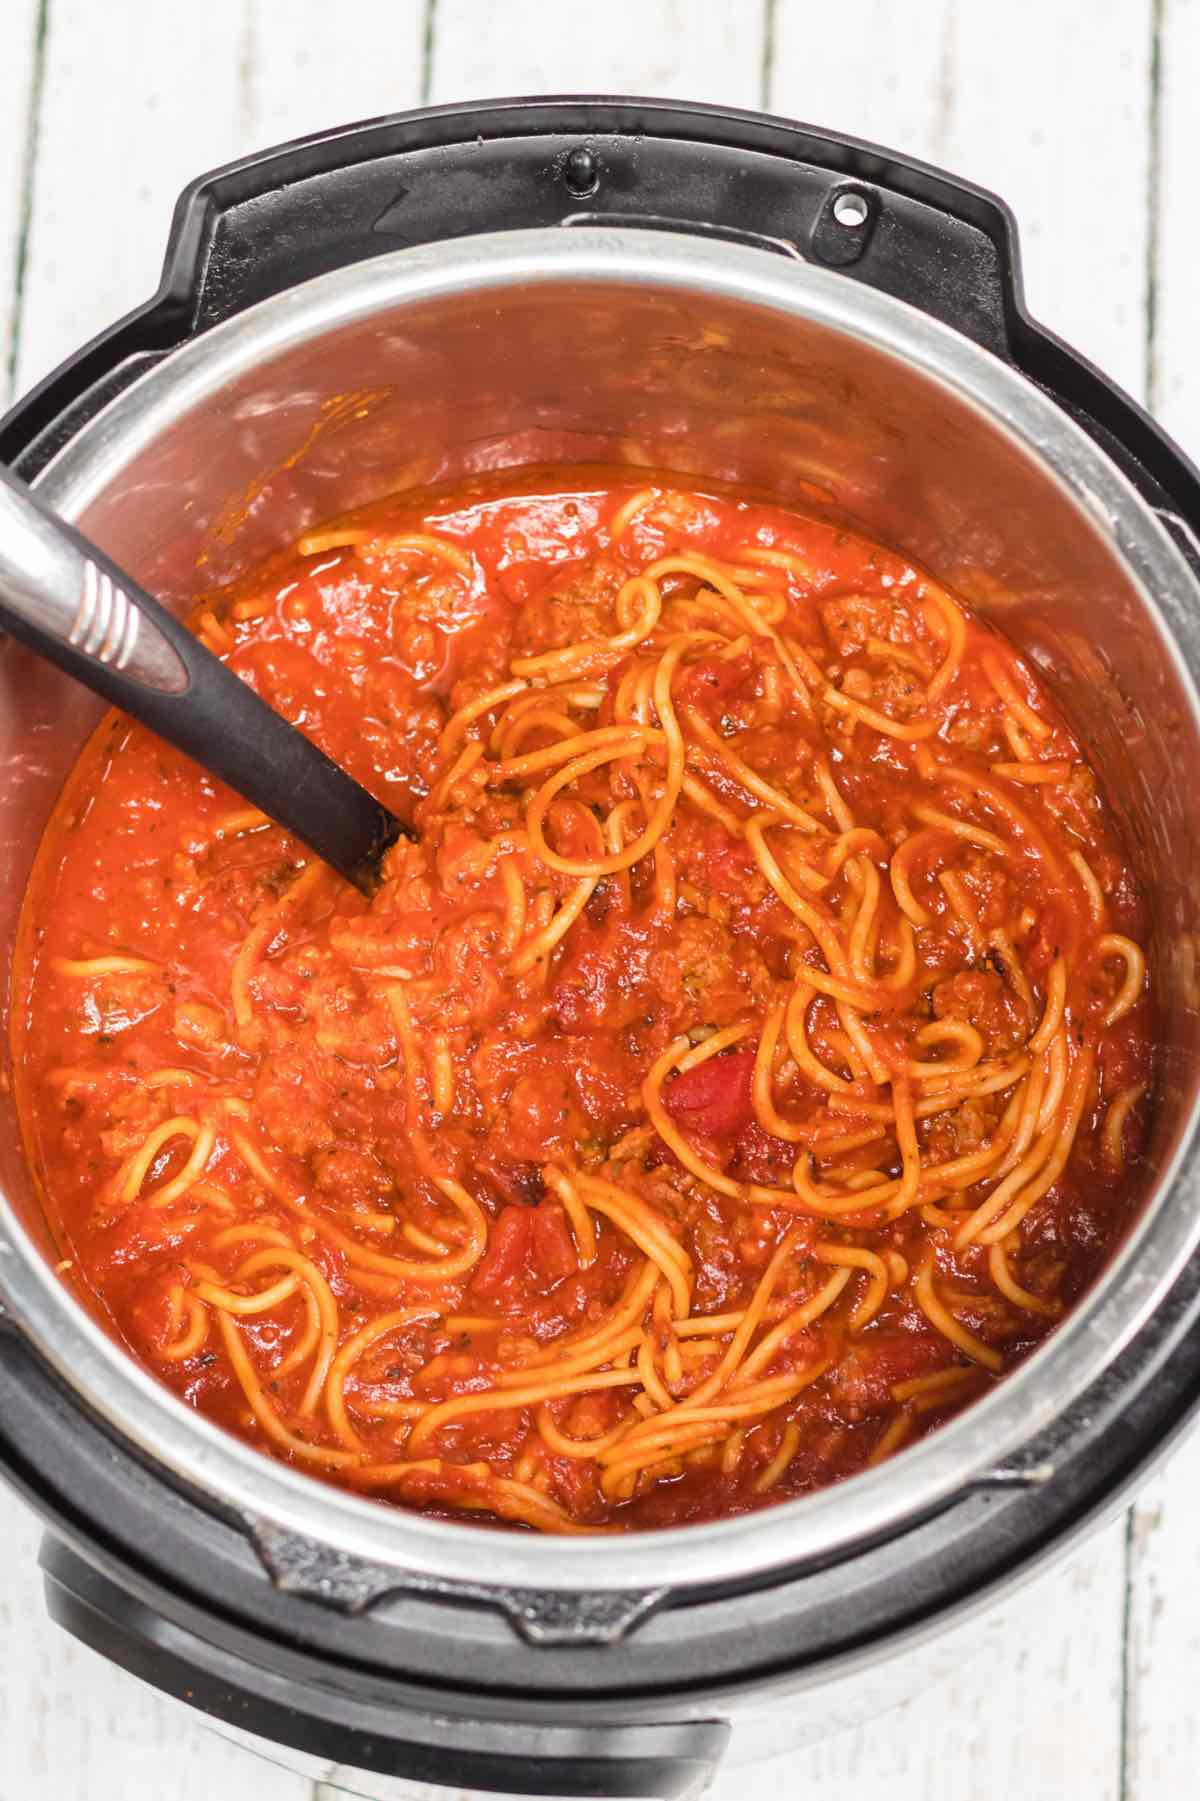 This Instant Pot Spaghetti and Meatballs Recipe is a delicious one-pot meal that the entire family will love. This delicious dinner will be ready in under 30 minutes!